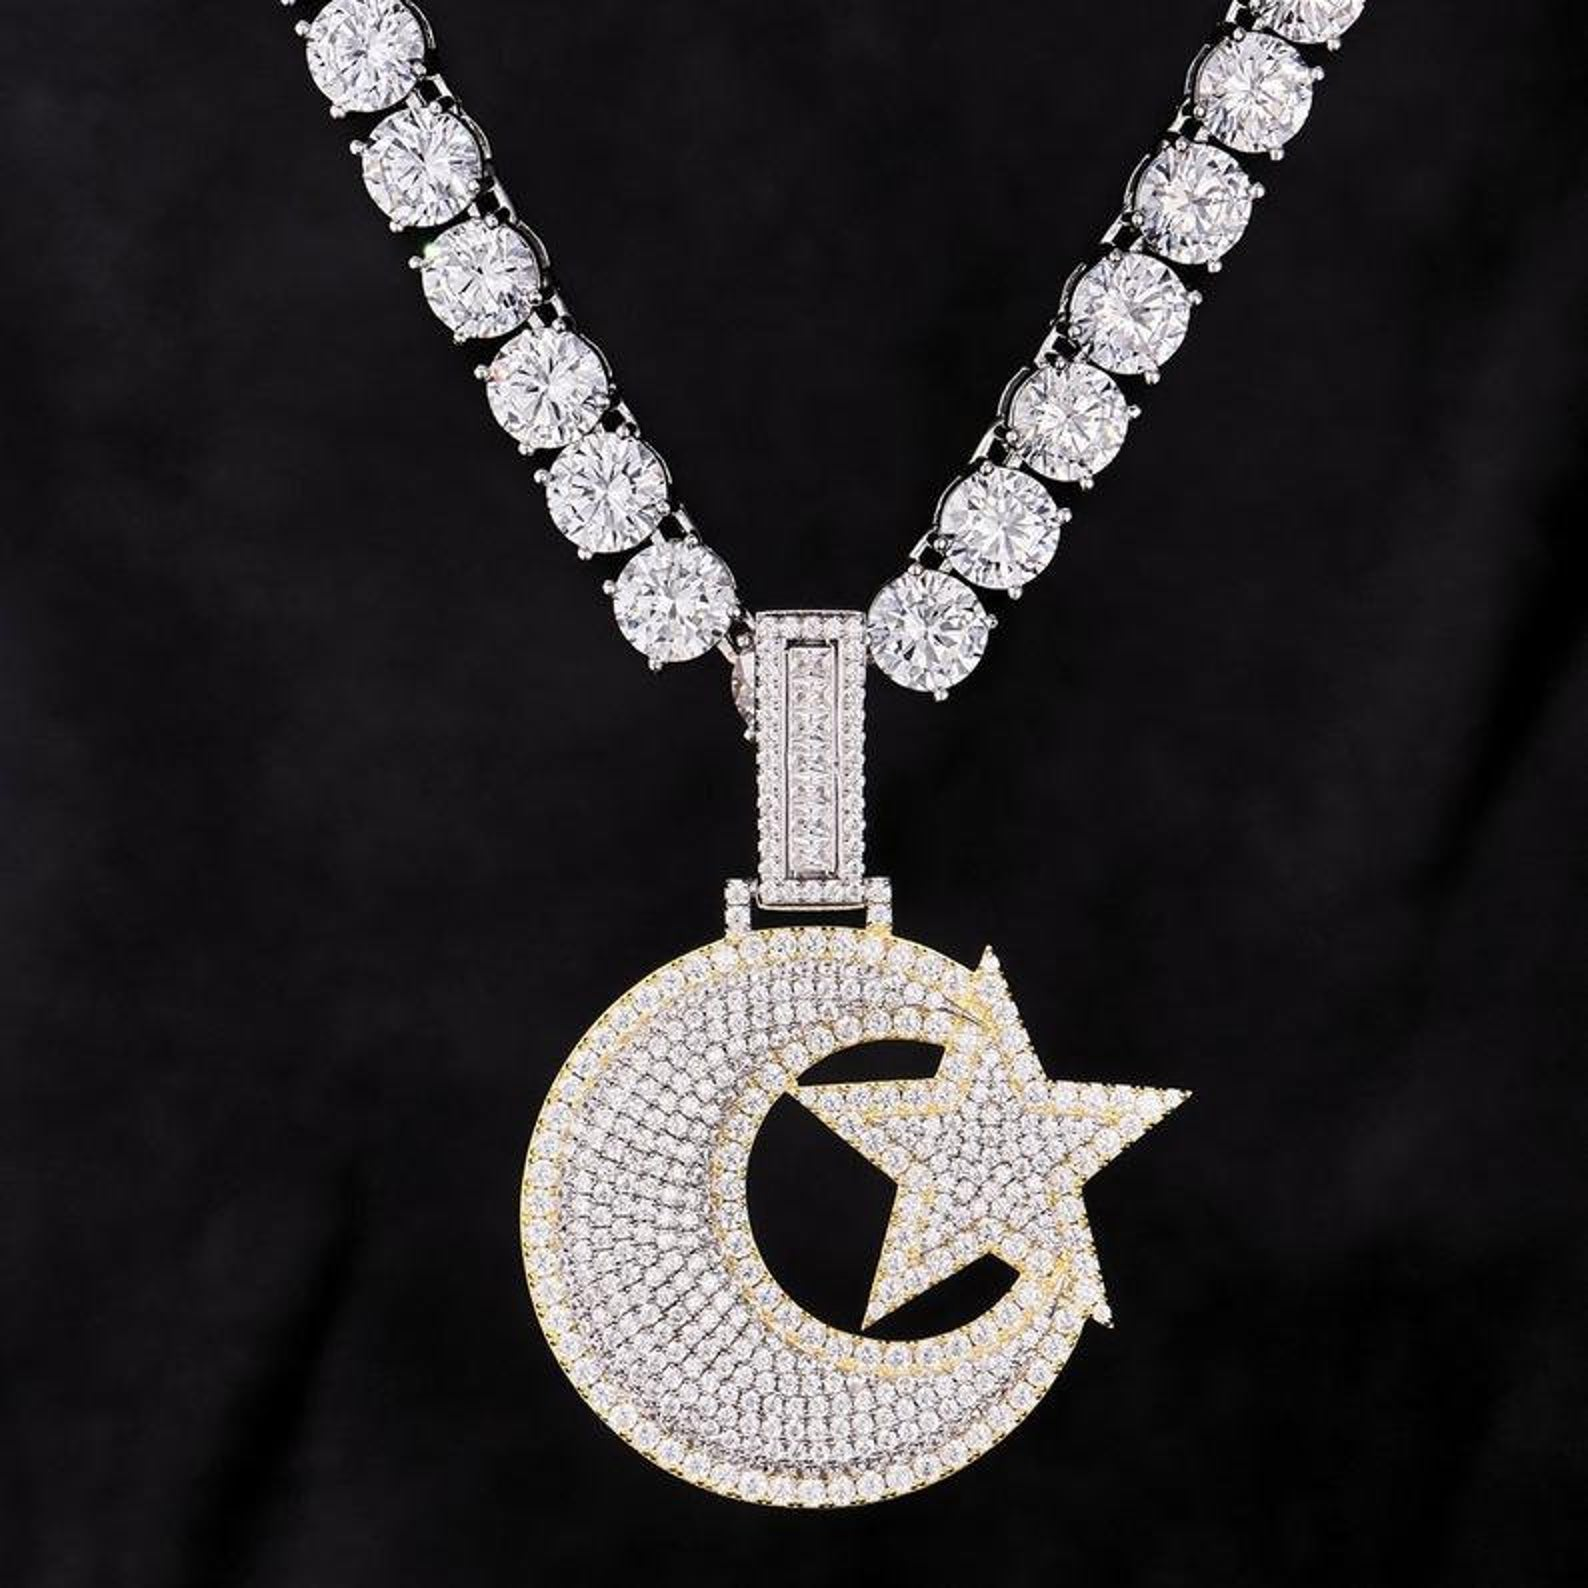 iced-out-half-crescent-moon-925-sterling-silver-pendant-for-men-dripwatch.store